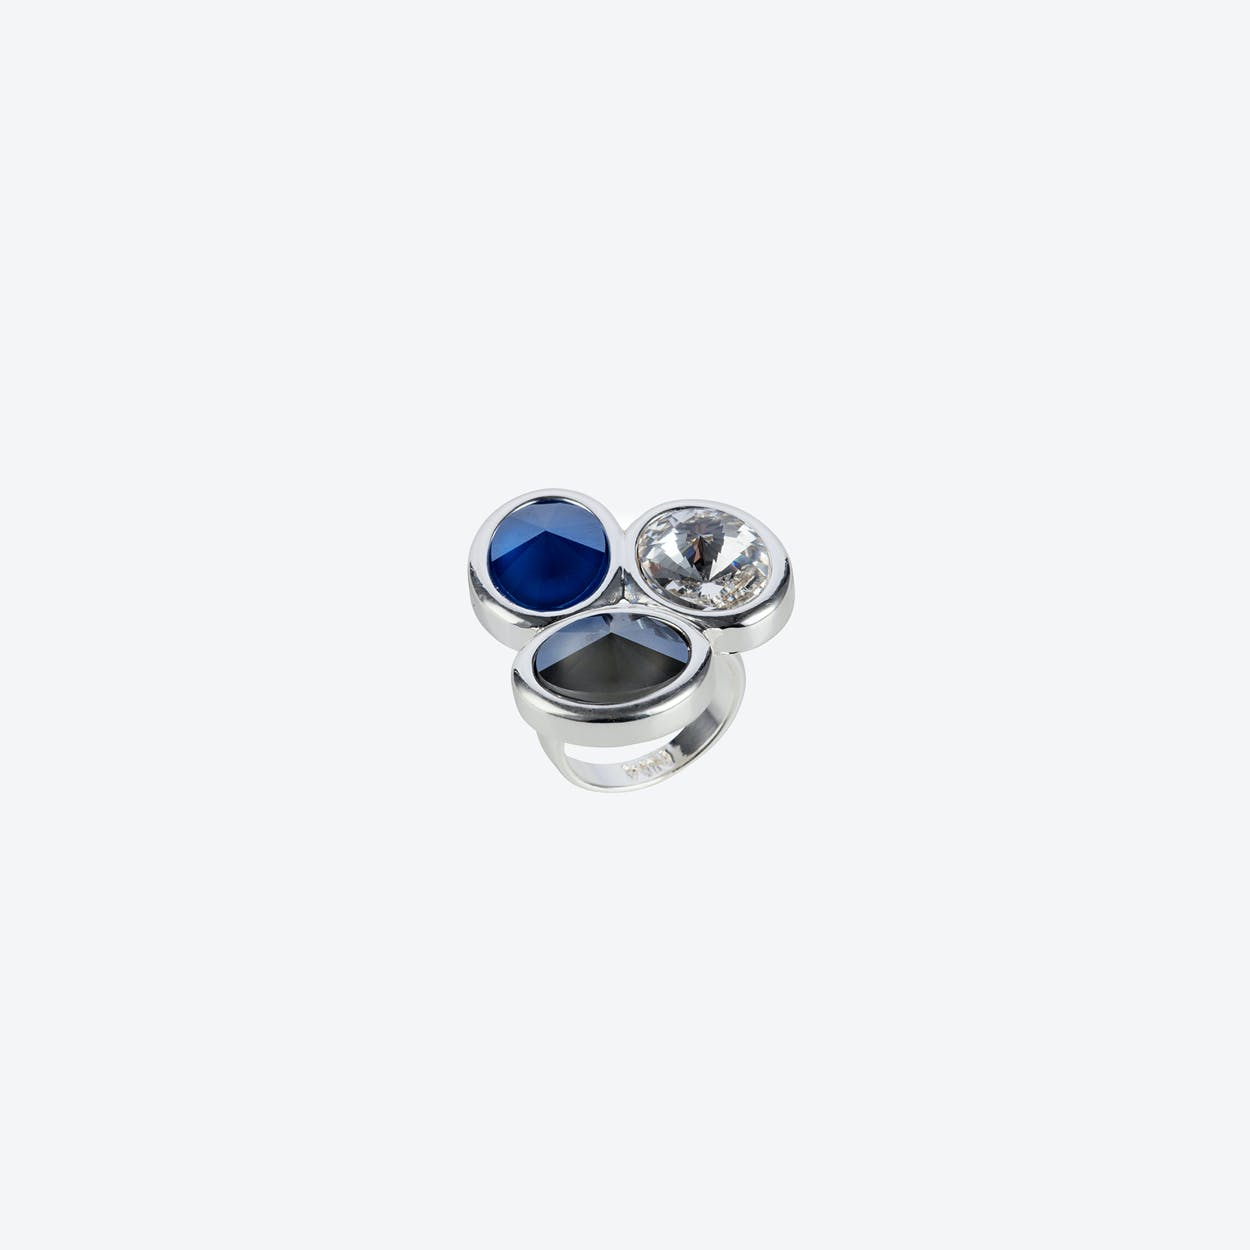 Triple Stone Oavl Ring in Silver/Blue Mix